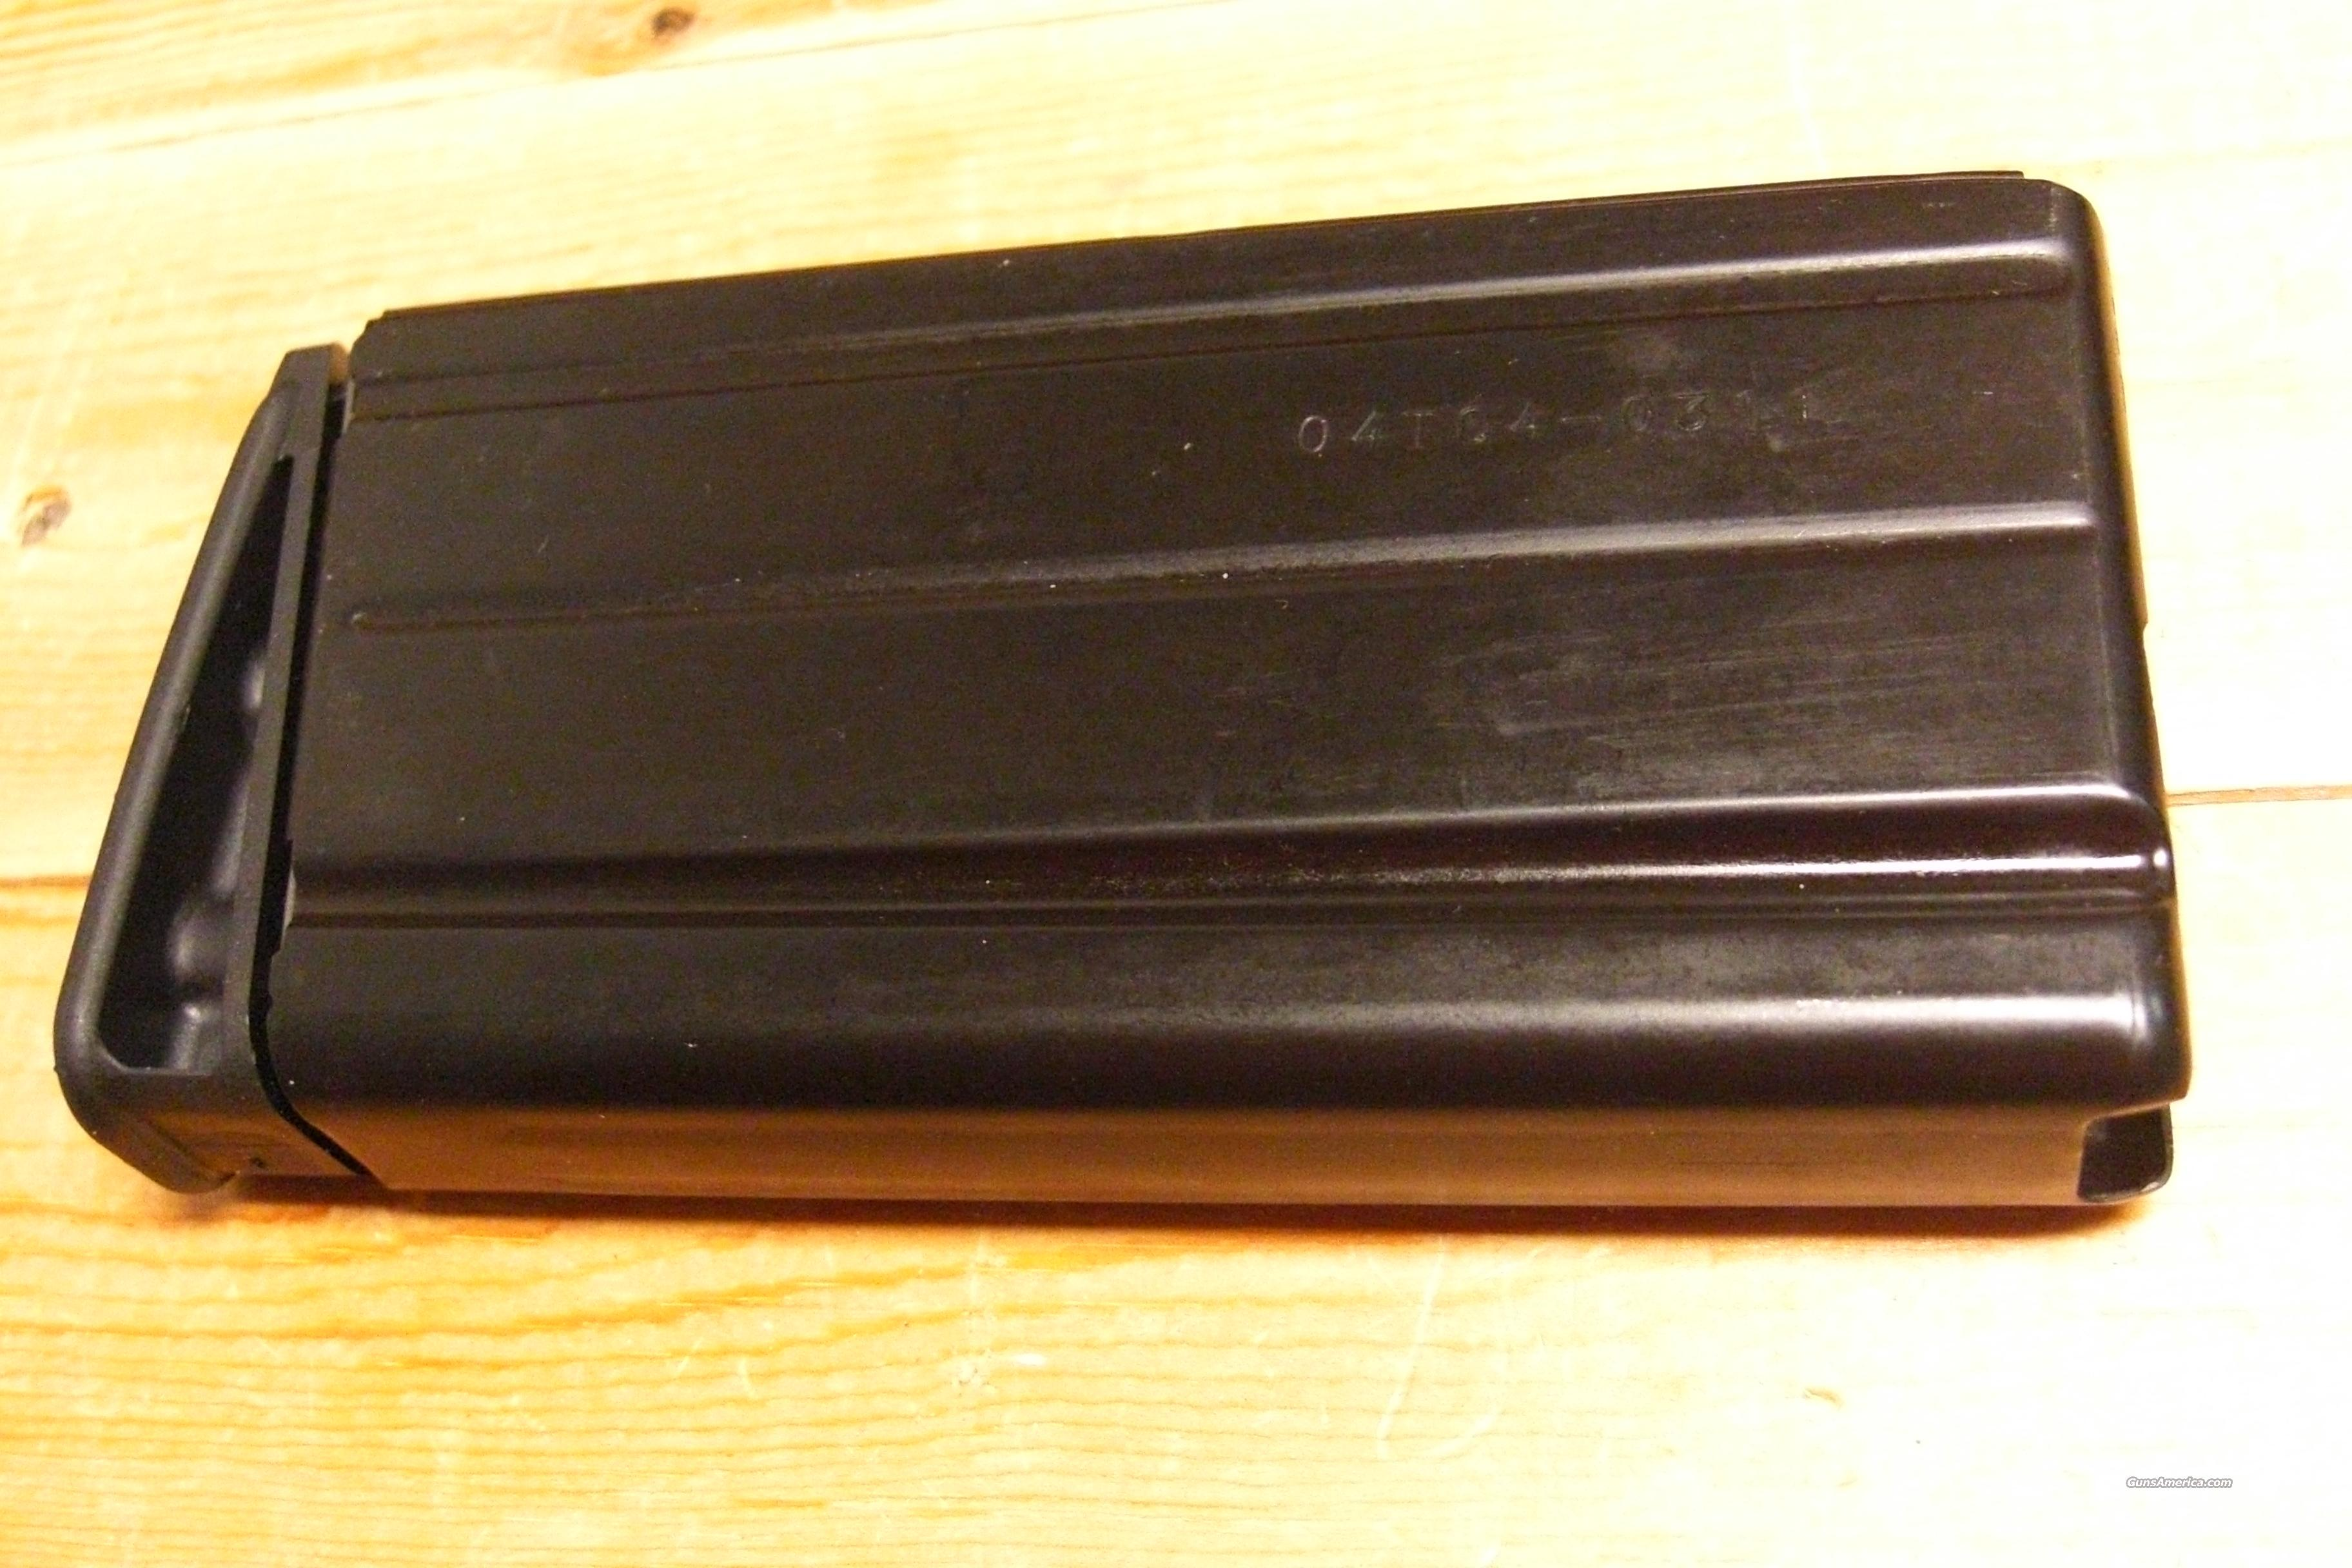 FNH Scar 17S magazine  Non-Guns > Magazines & Clips > Rifle Magazines > Other